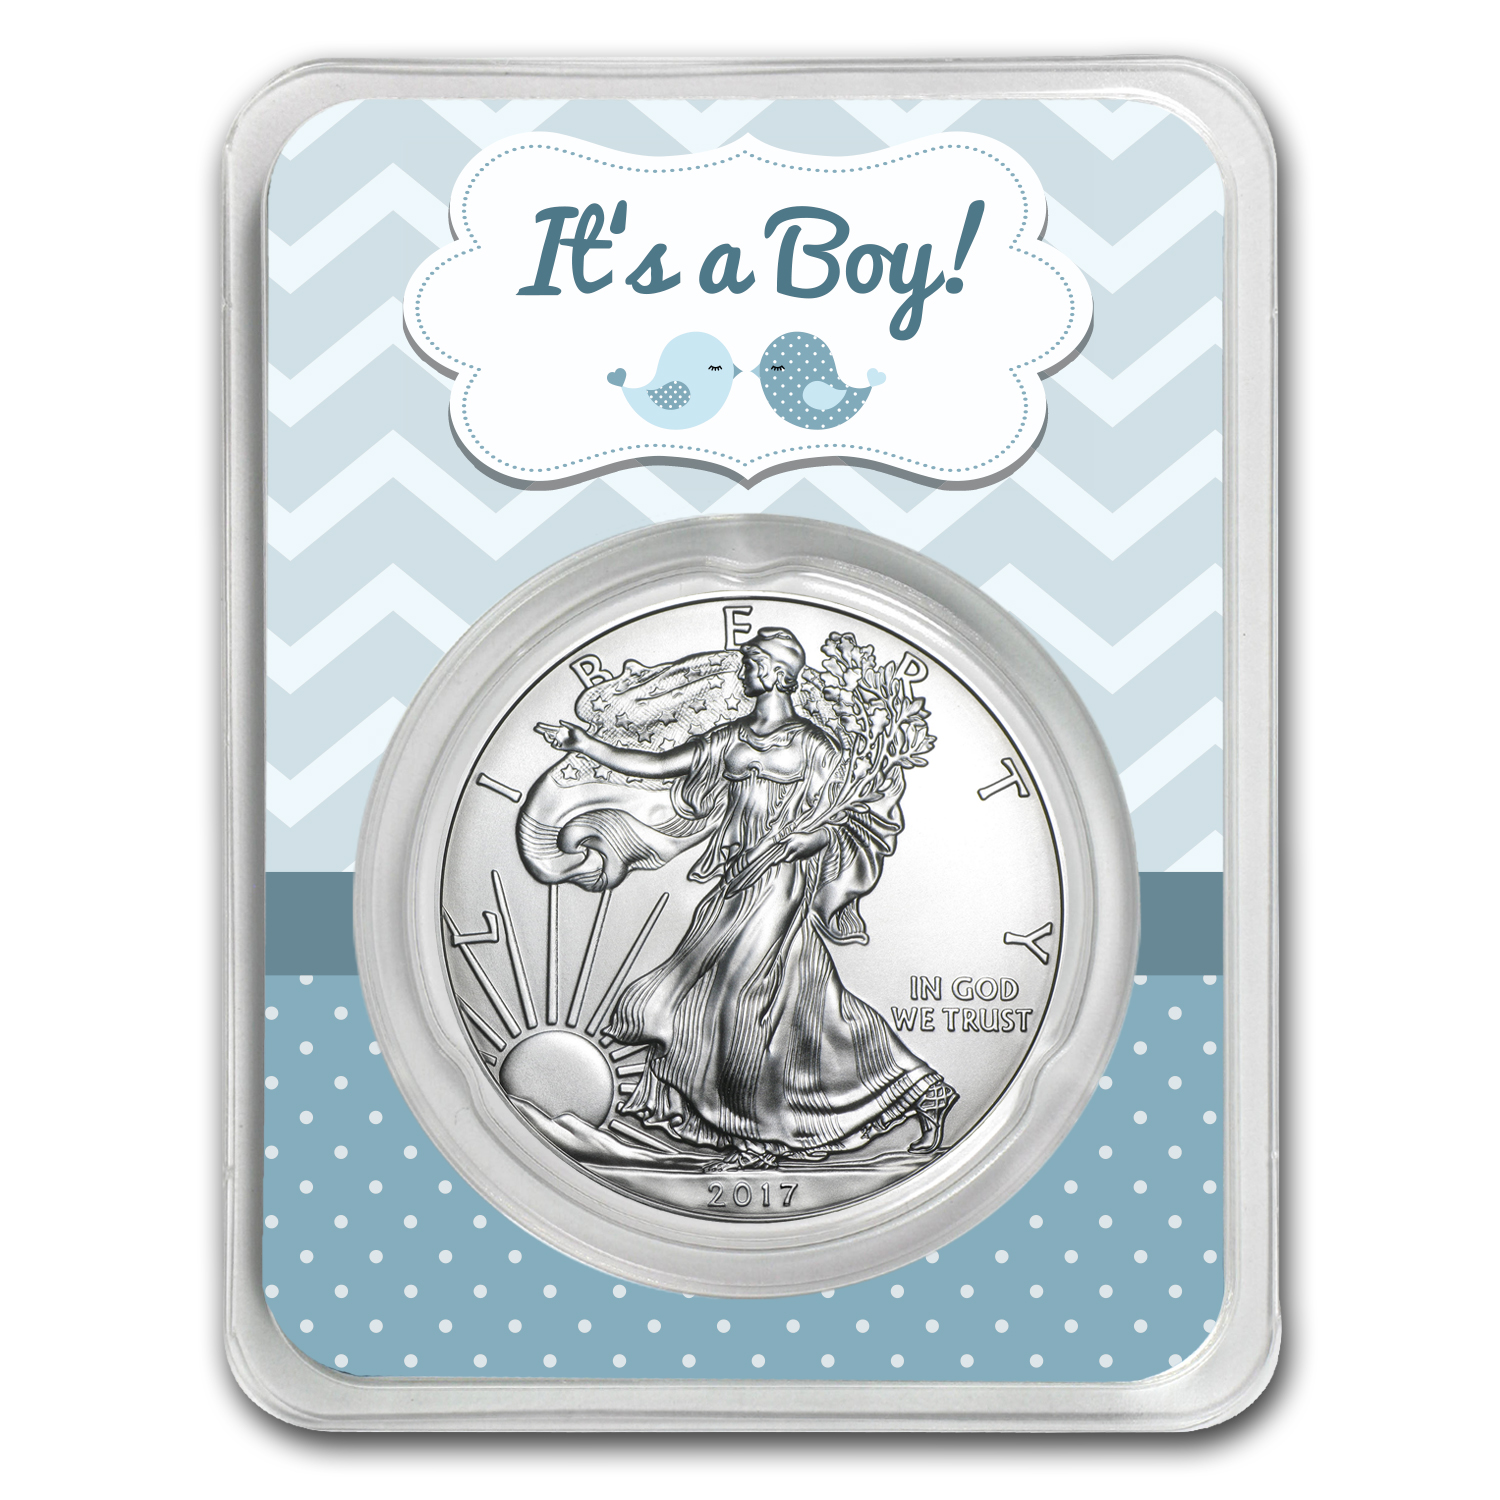 2017 1 oz Silver American Eagle - It's A Boy